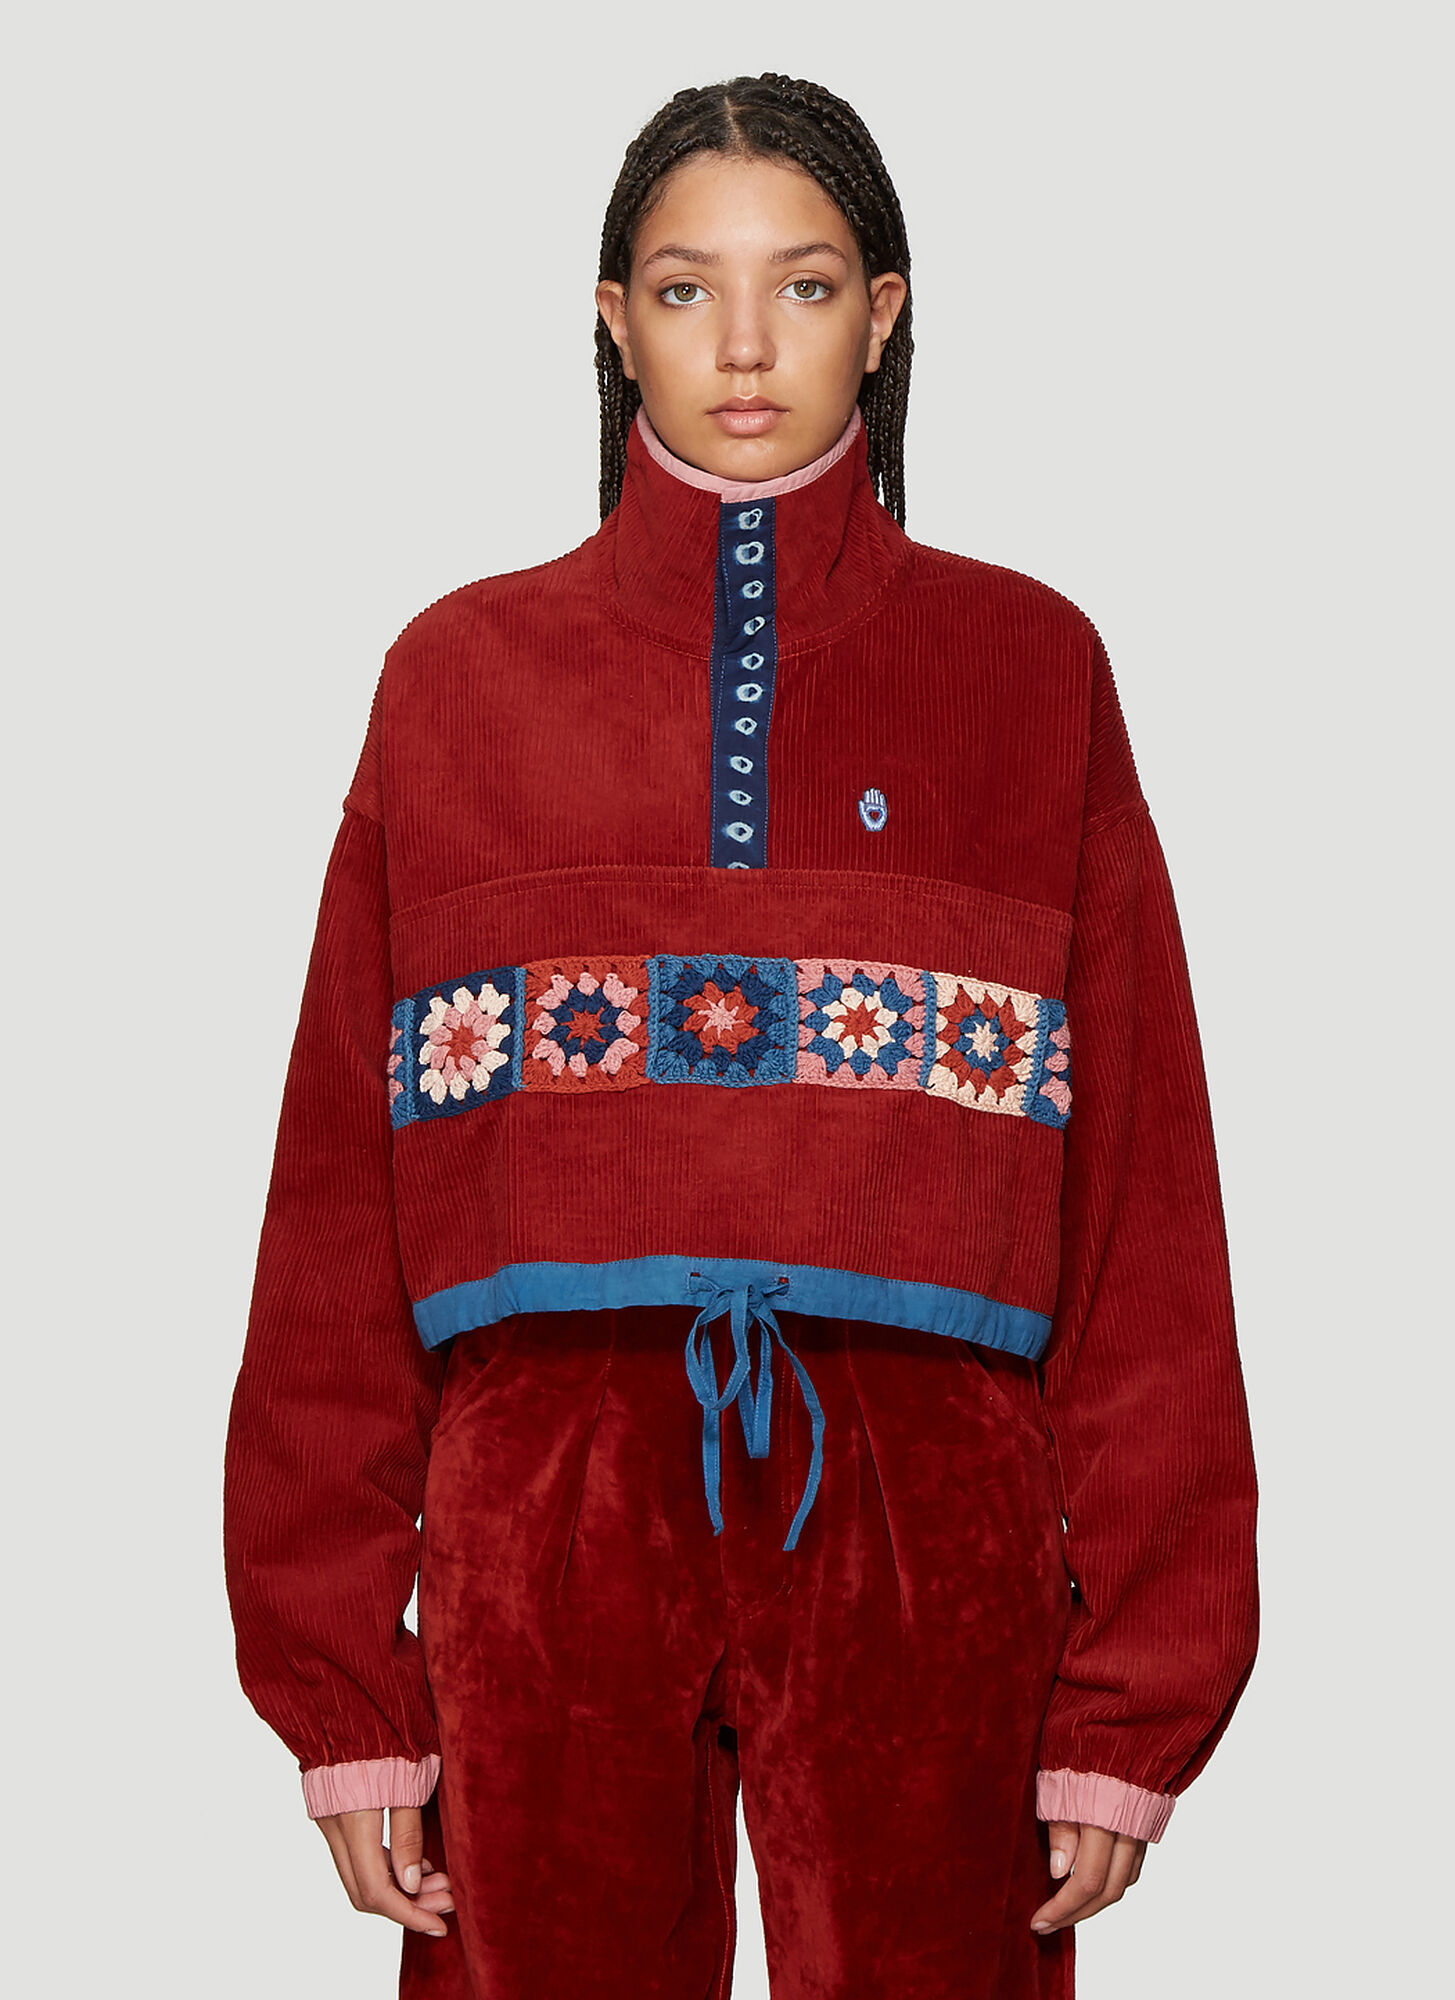 STORY mfg. Cord Cropped Pullover Jacket in Red